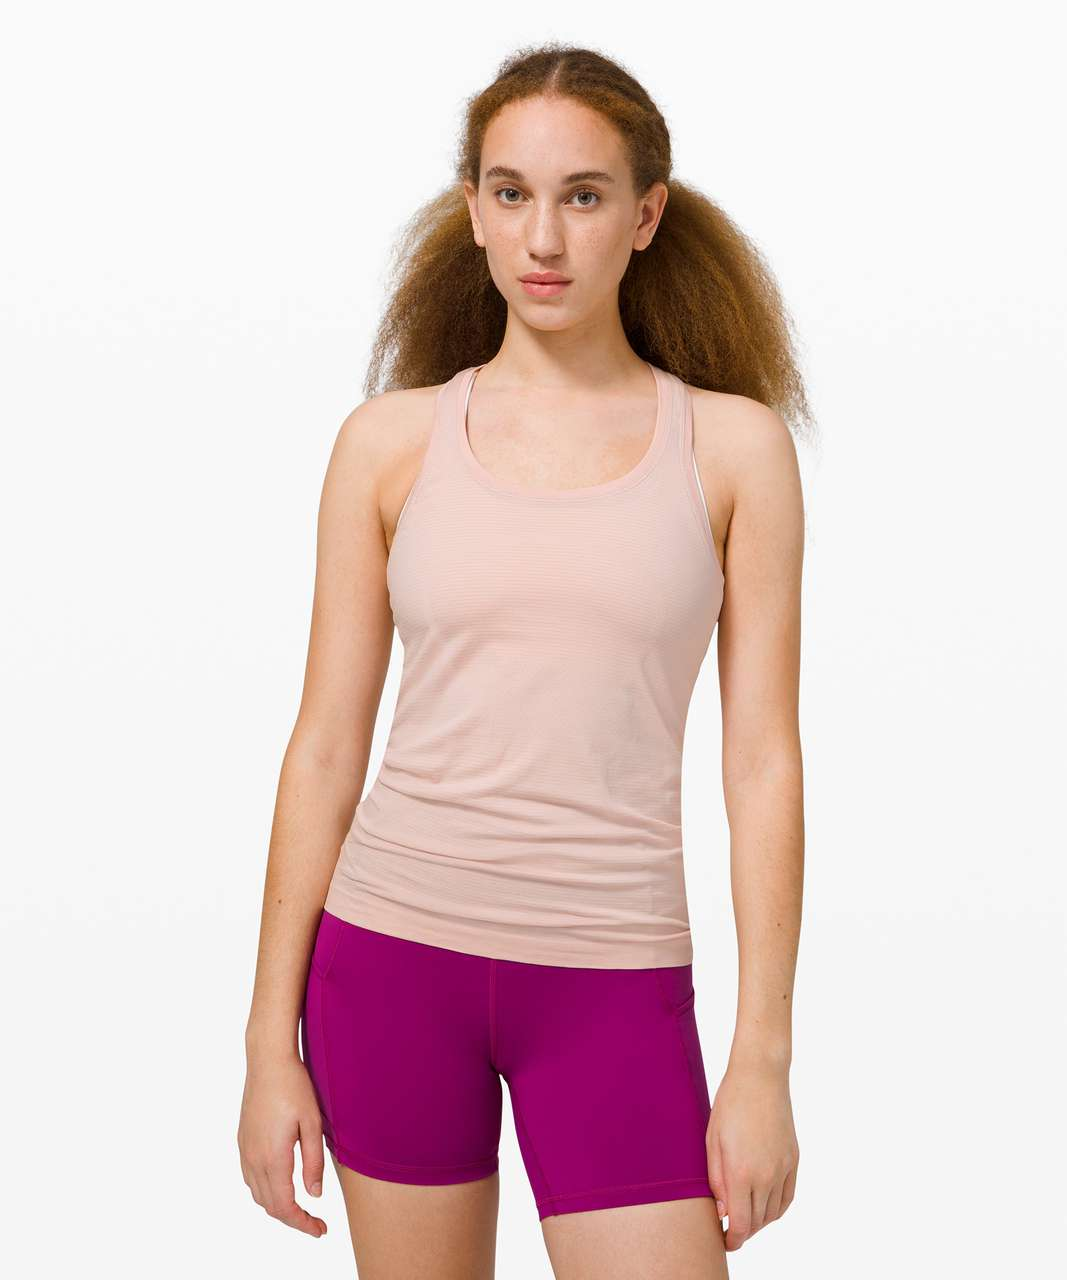 Lululemon Swiftly Tech Racerback 2.0 - Feather Pink / Feather Pink